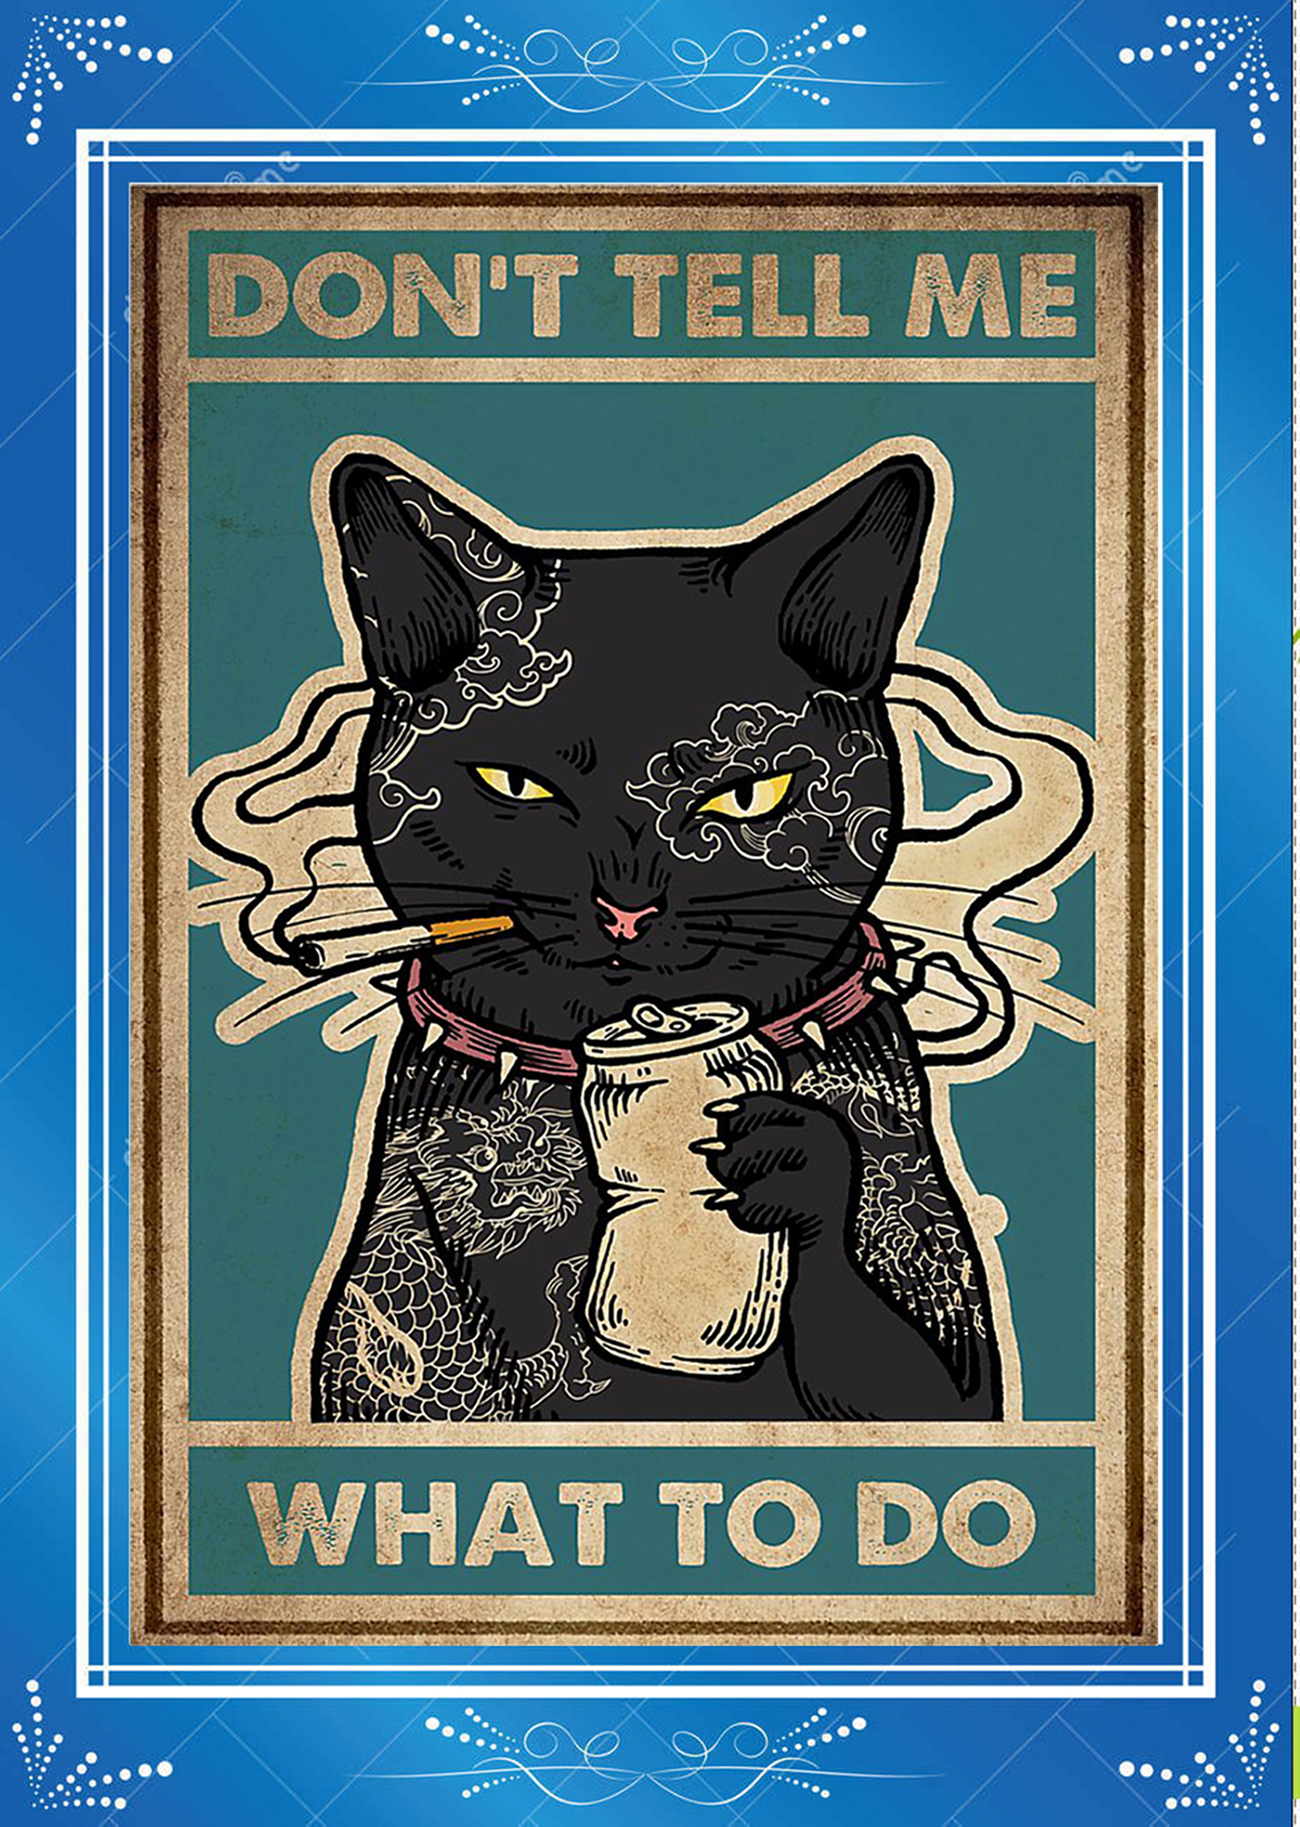 Black Cat Don't tell me what to do Poster-a2